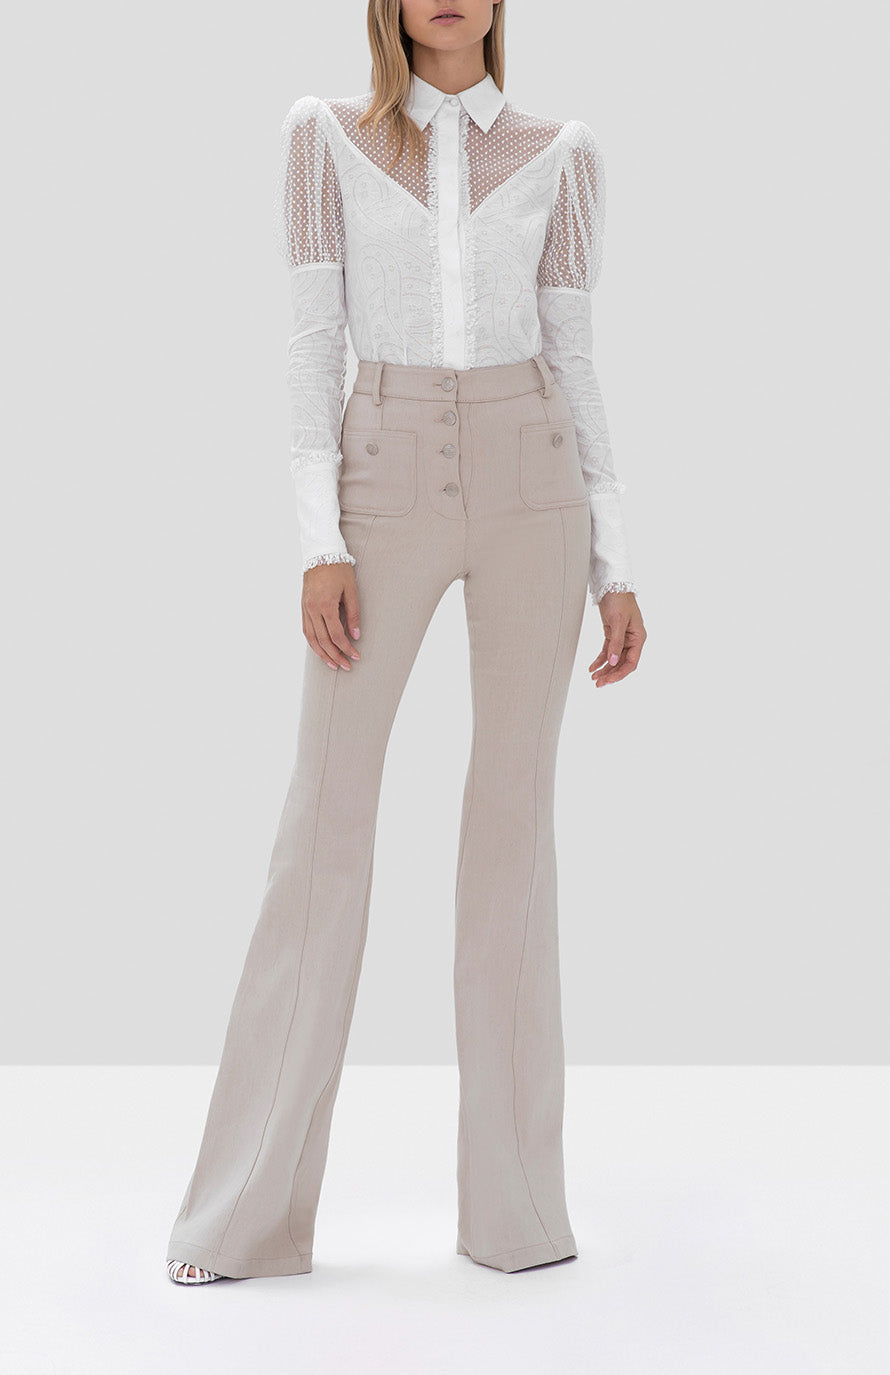 Alexis Virginia Top in White and Helene Pant in Oyster Denim - Rear View